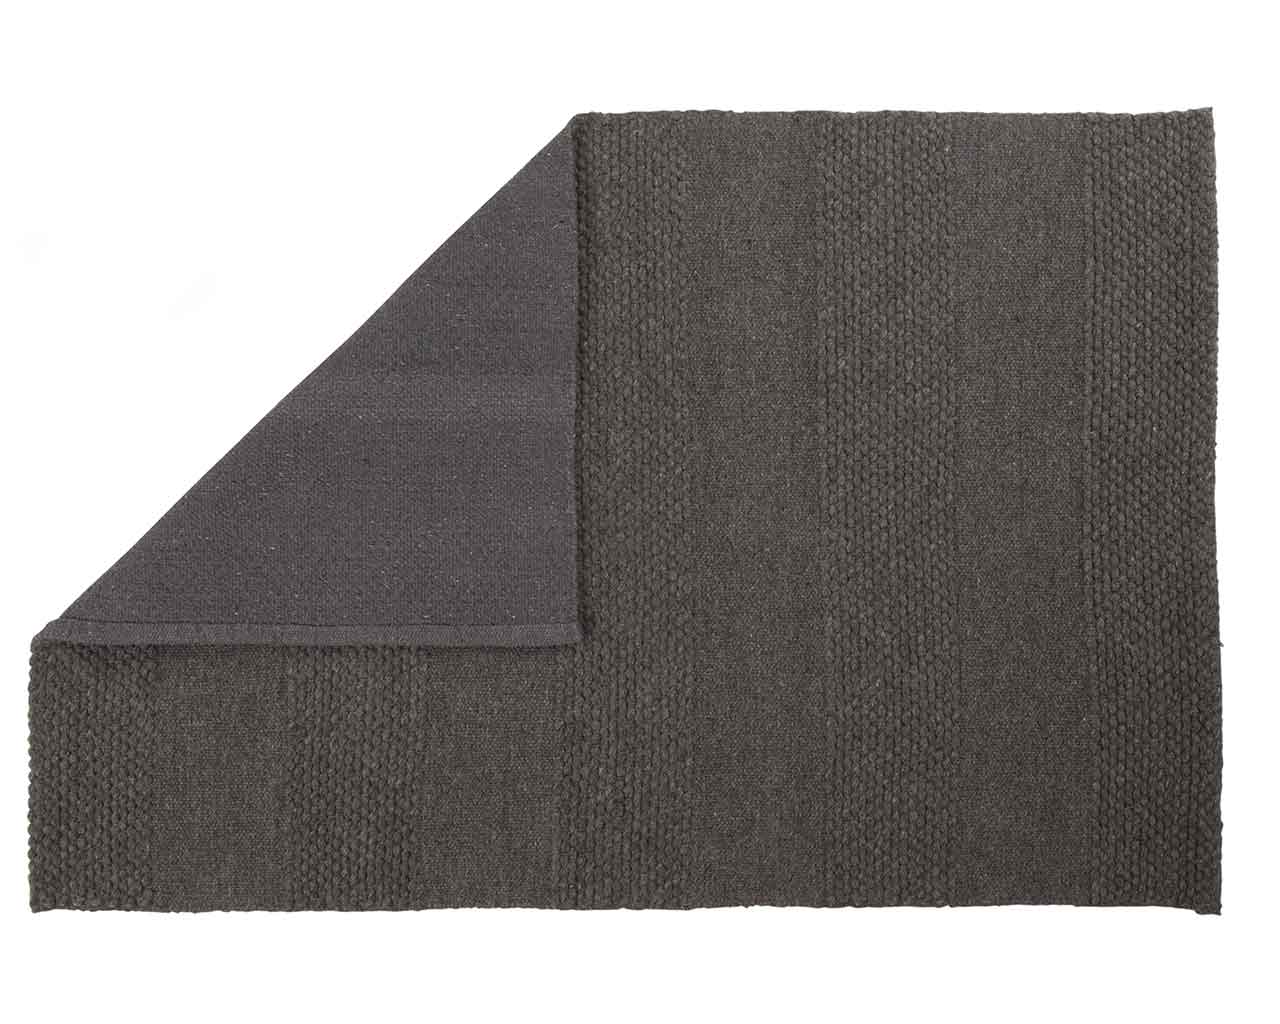 rectangle folded corner carpets woolrugs sukhi design 1 1